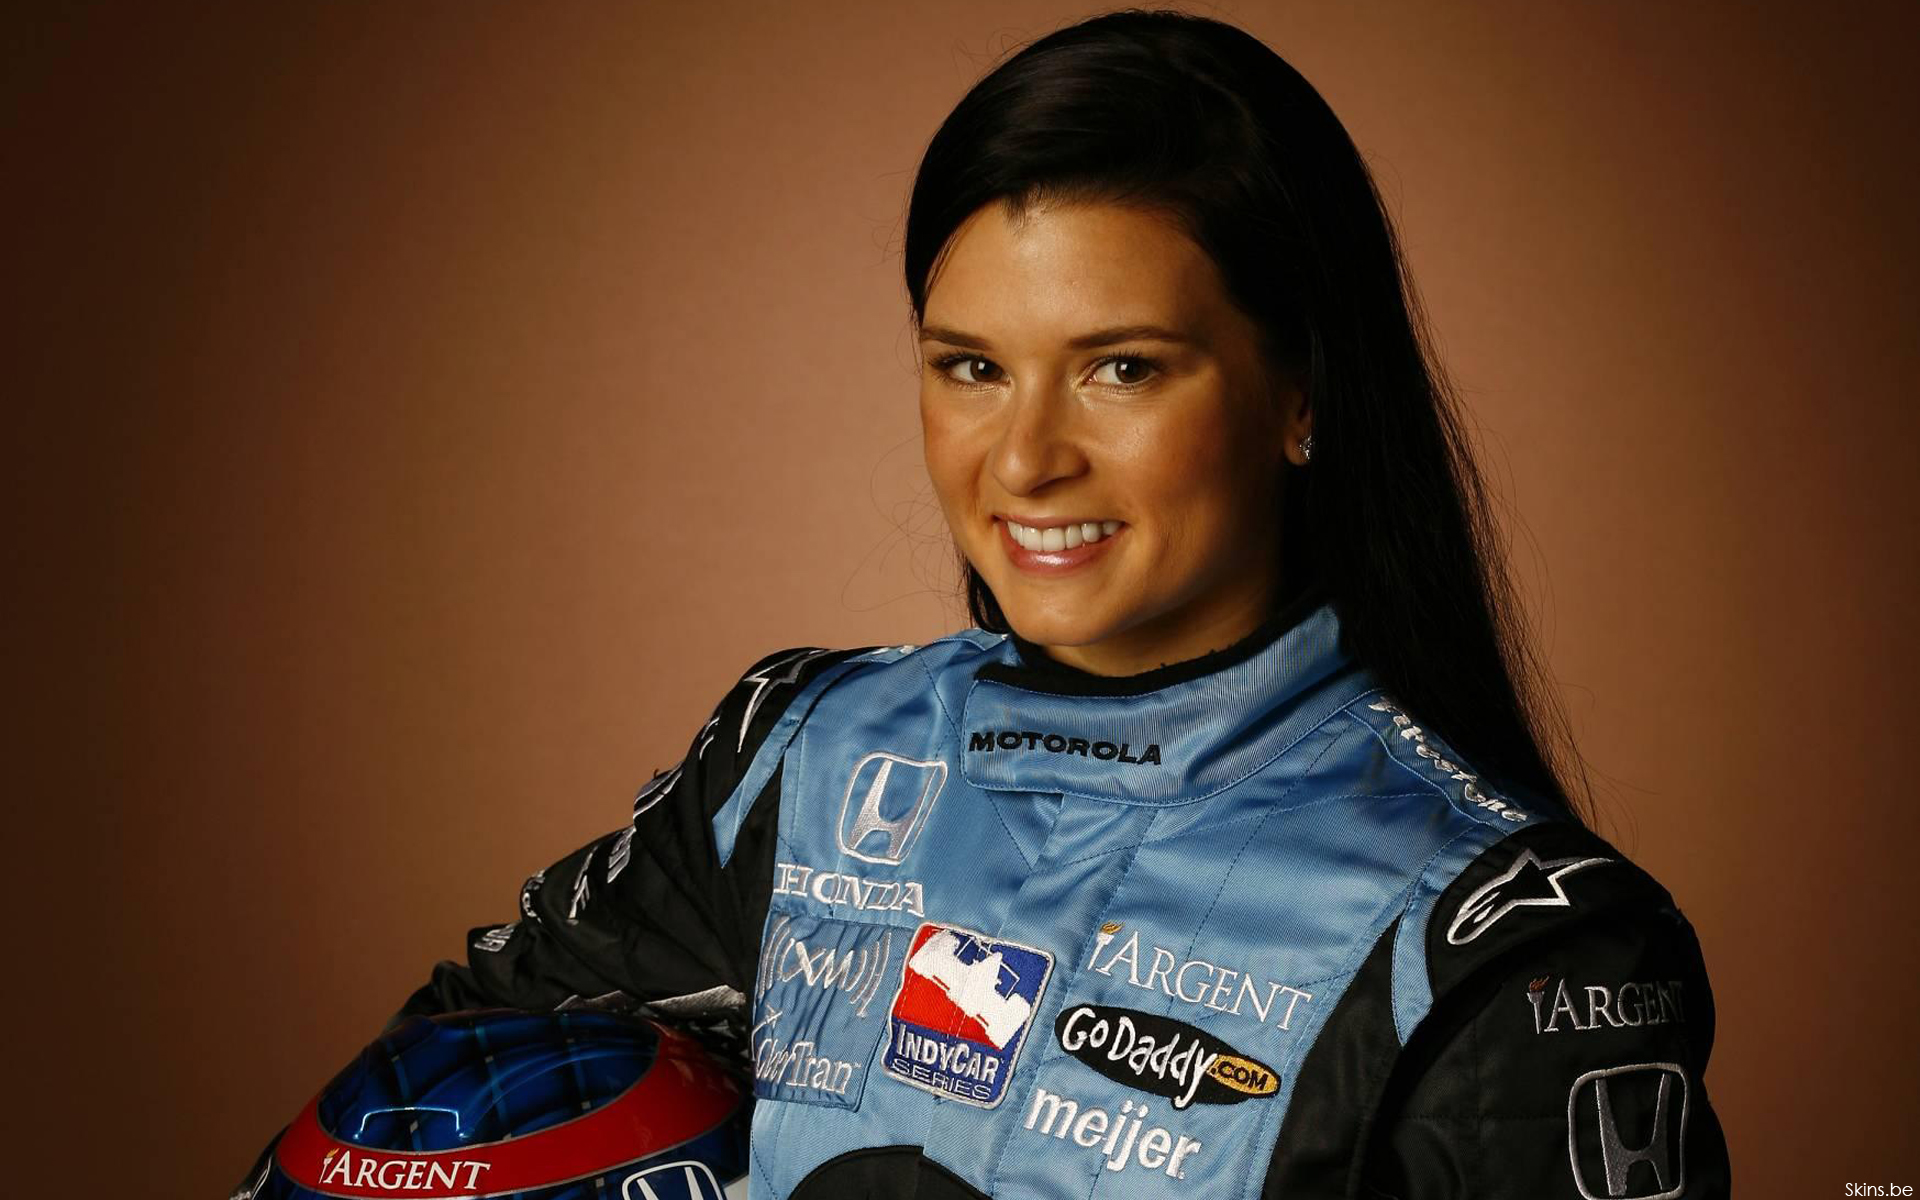 Wallpapers By Wicked Shadows Danica Patrick Dale: [47+] Danica Patrick Wallpapers On WallpaperSafari